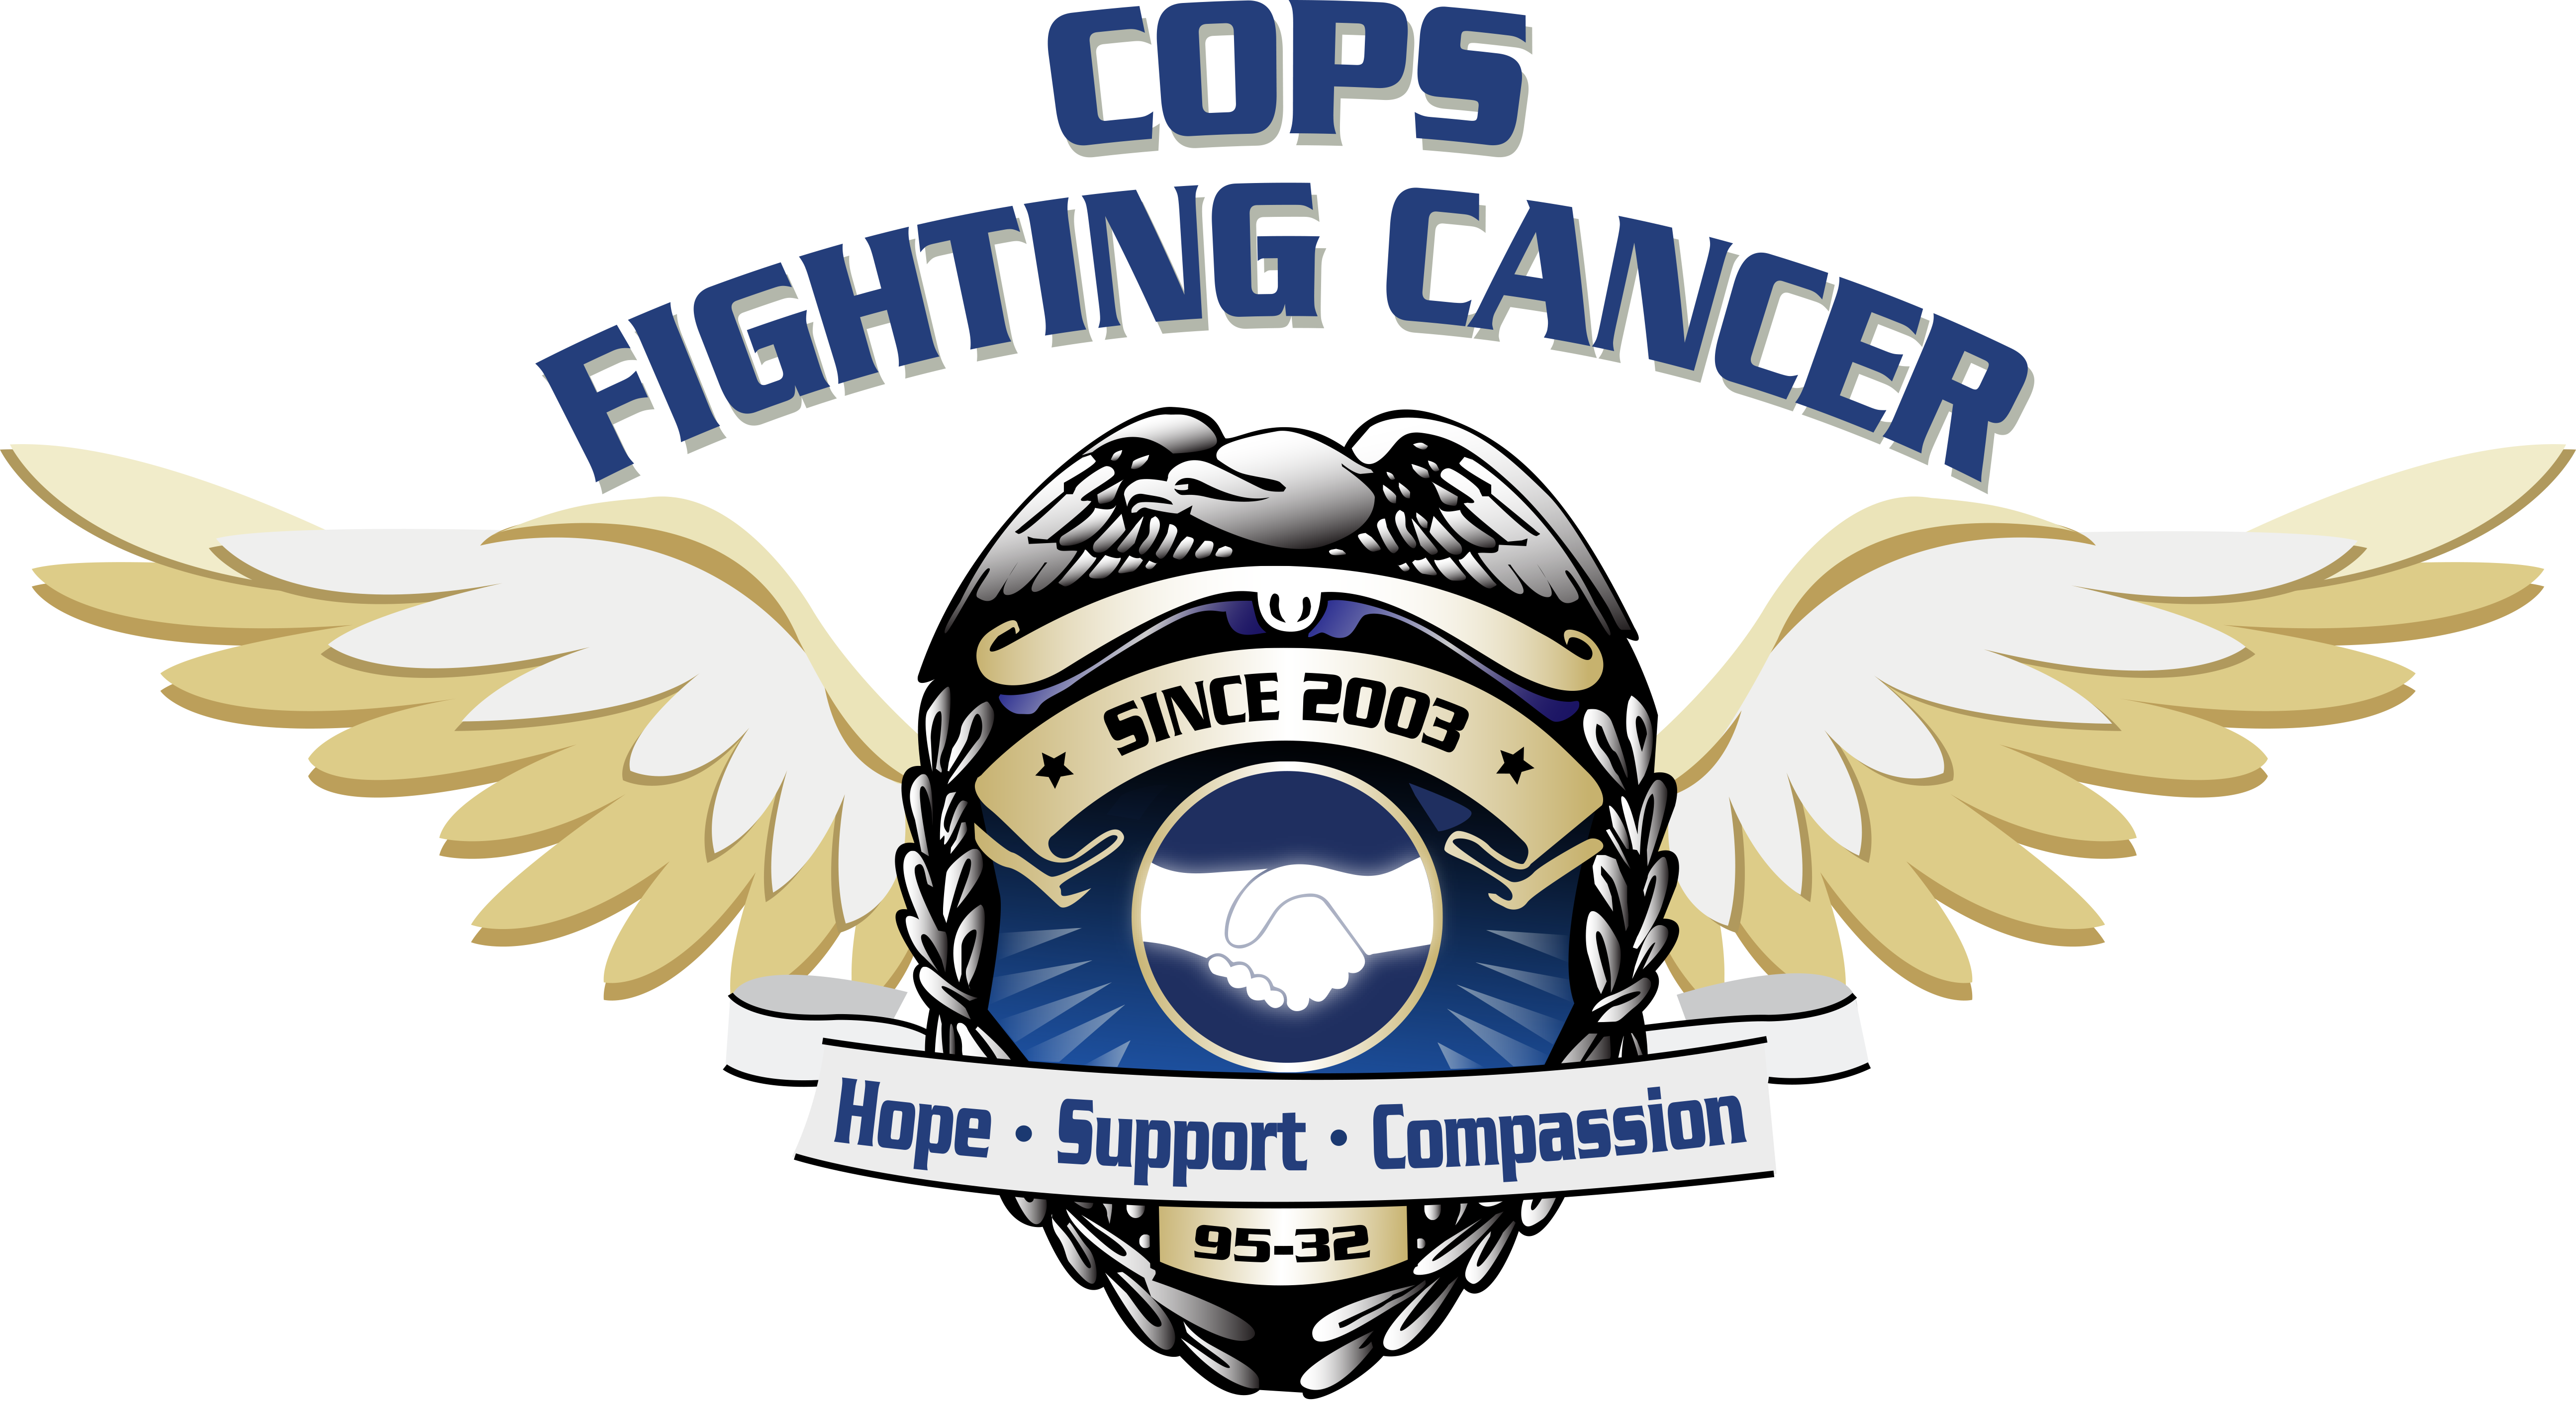 amazon-smile-gives-cops-fighting-cancer Home